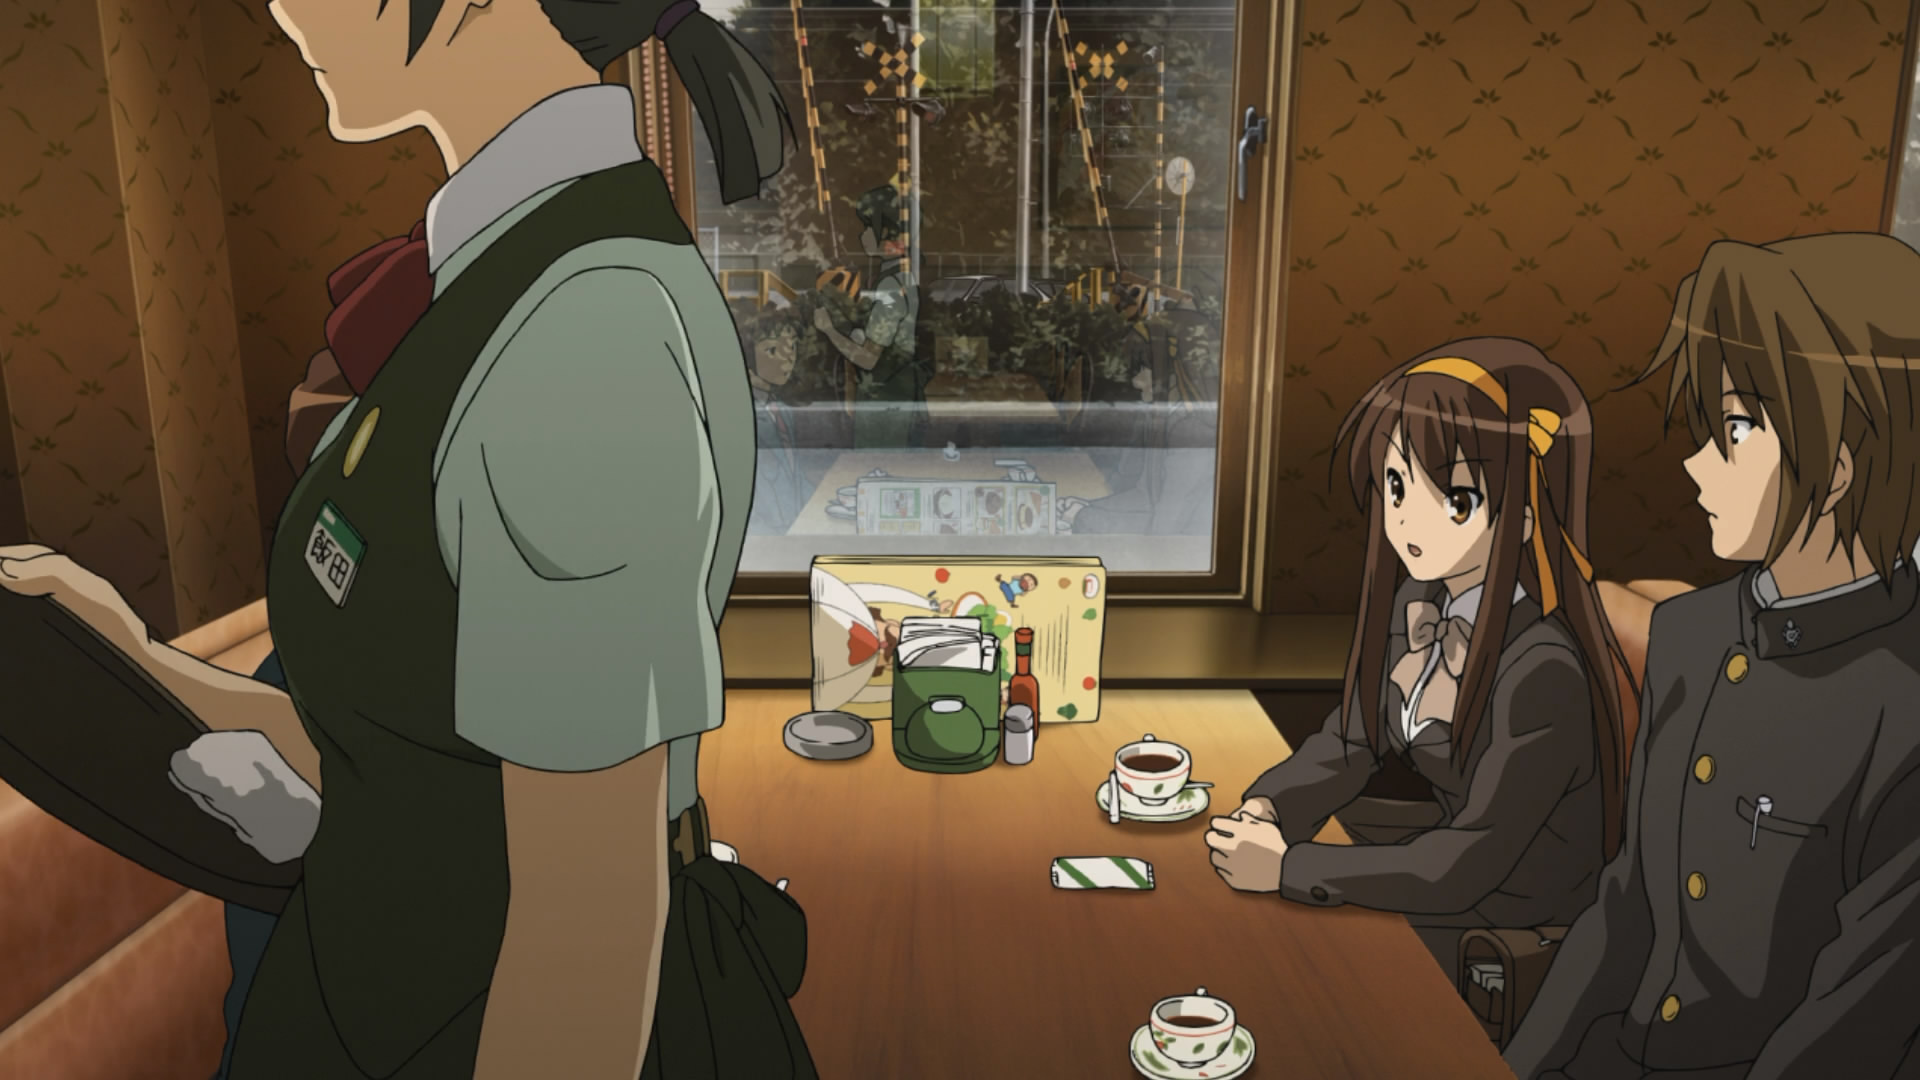 Moments In Anime 2010 When God Is Away Kyon Wont Pray Kyons Threat The Disappearance Of Haruhi Suzumiya